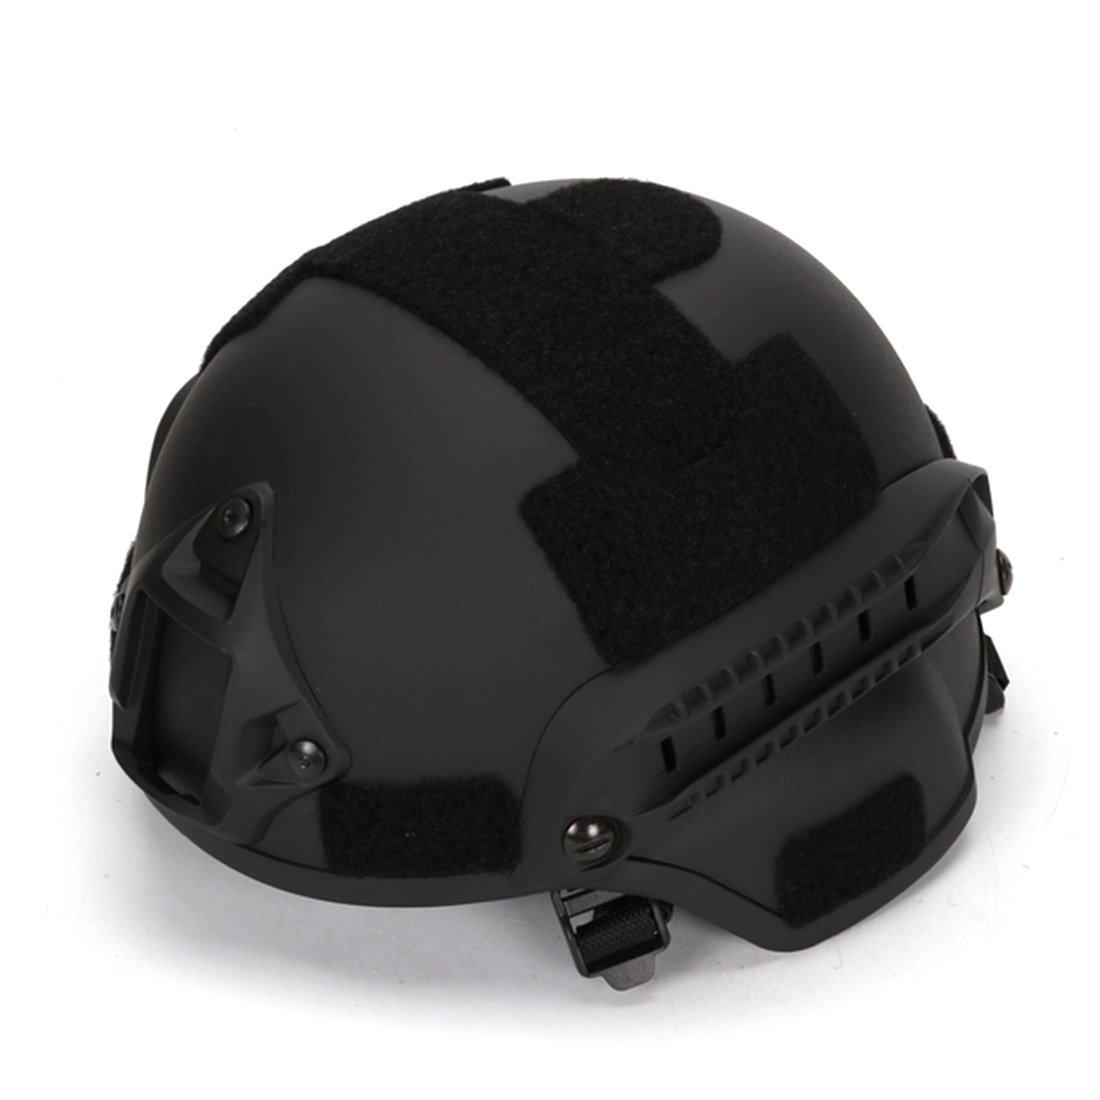 Outdoor Wargame Anti-riot Lightweight Helmet Airsoft Shooting Tactical Helmet  For Men Hunting Paintball Accessories